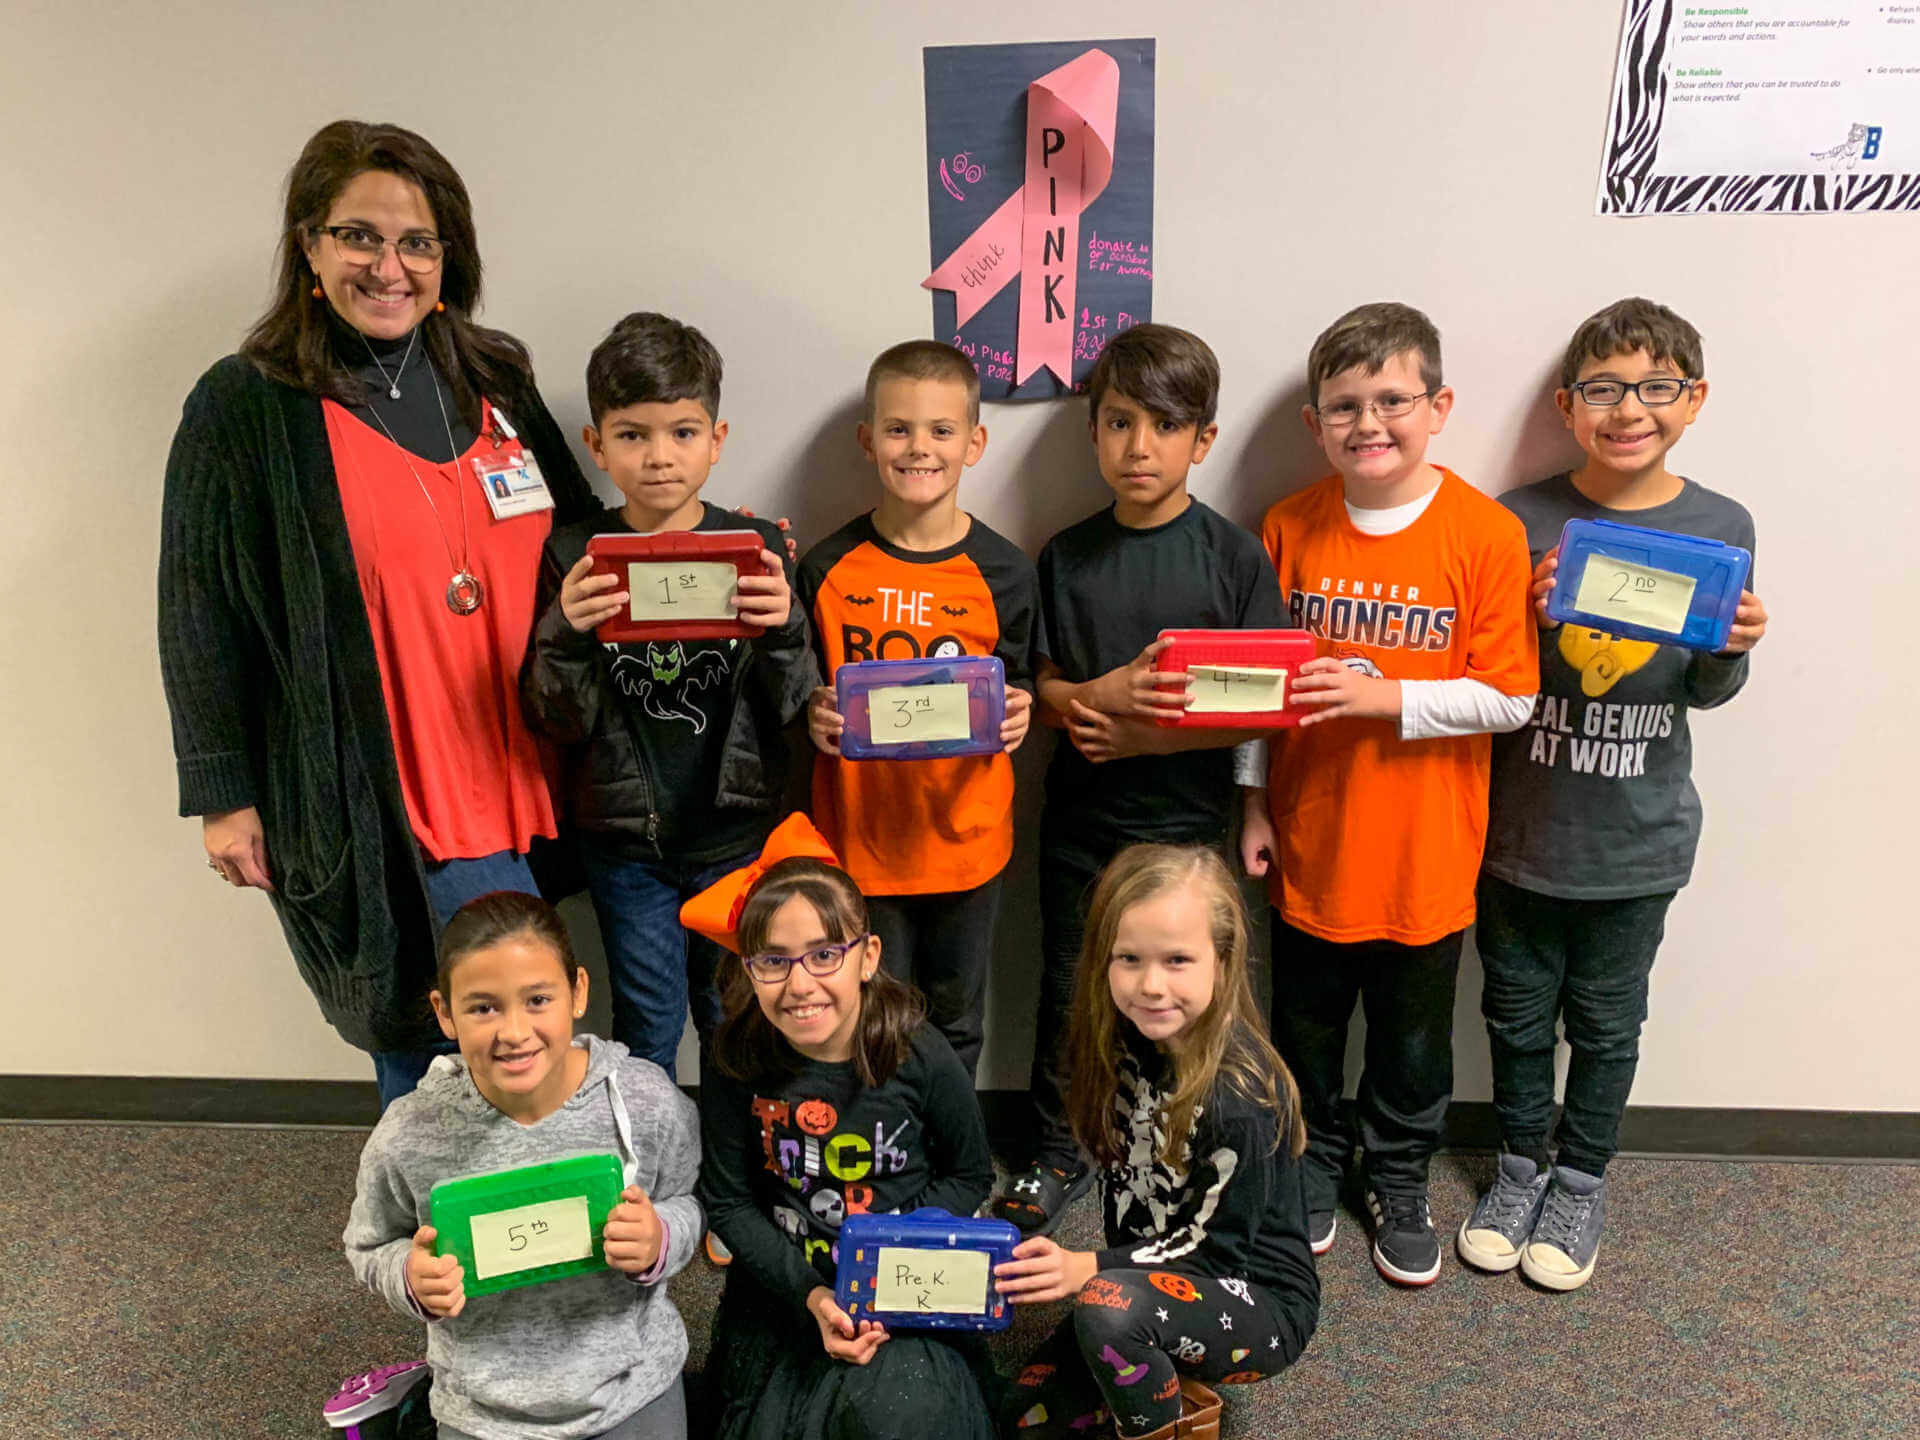 Bernshausen Students Raise $1,000 for Cancer Research